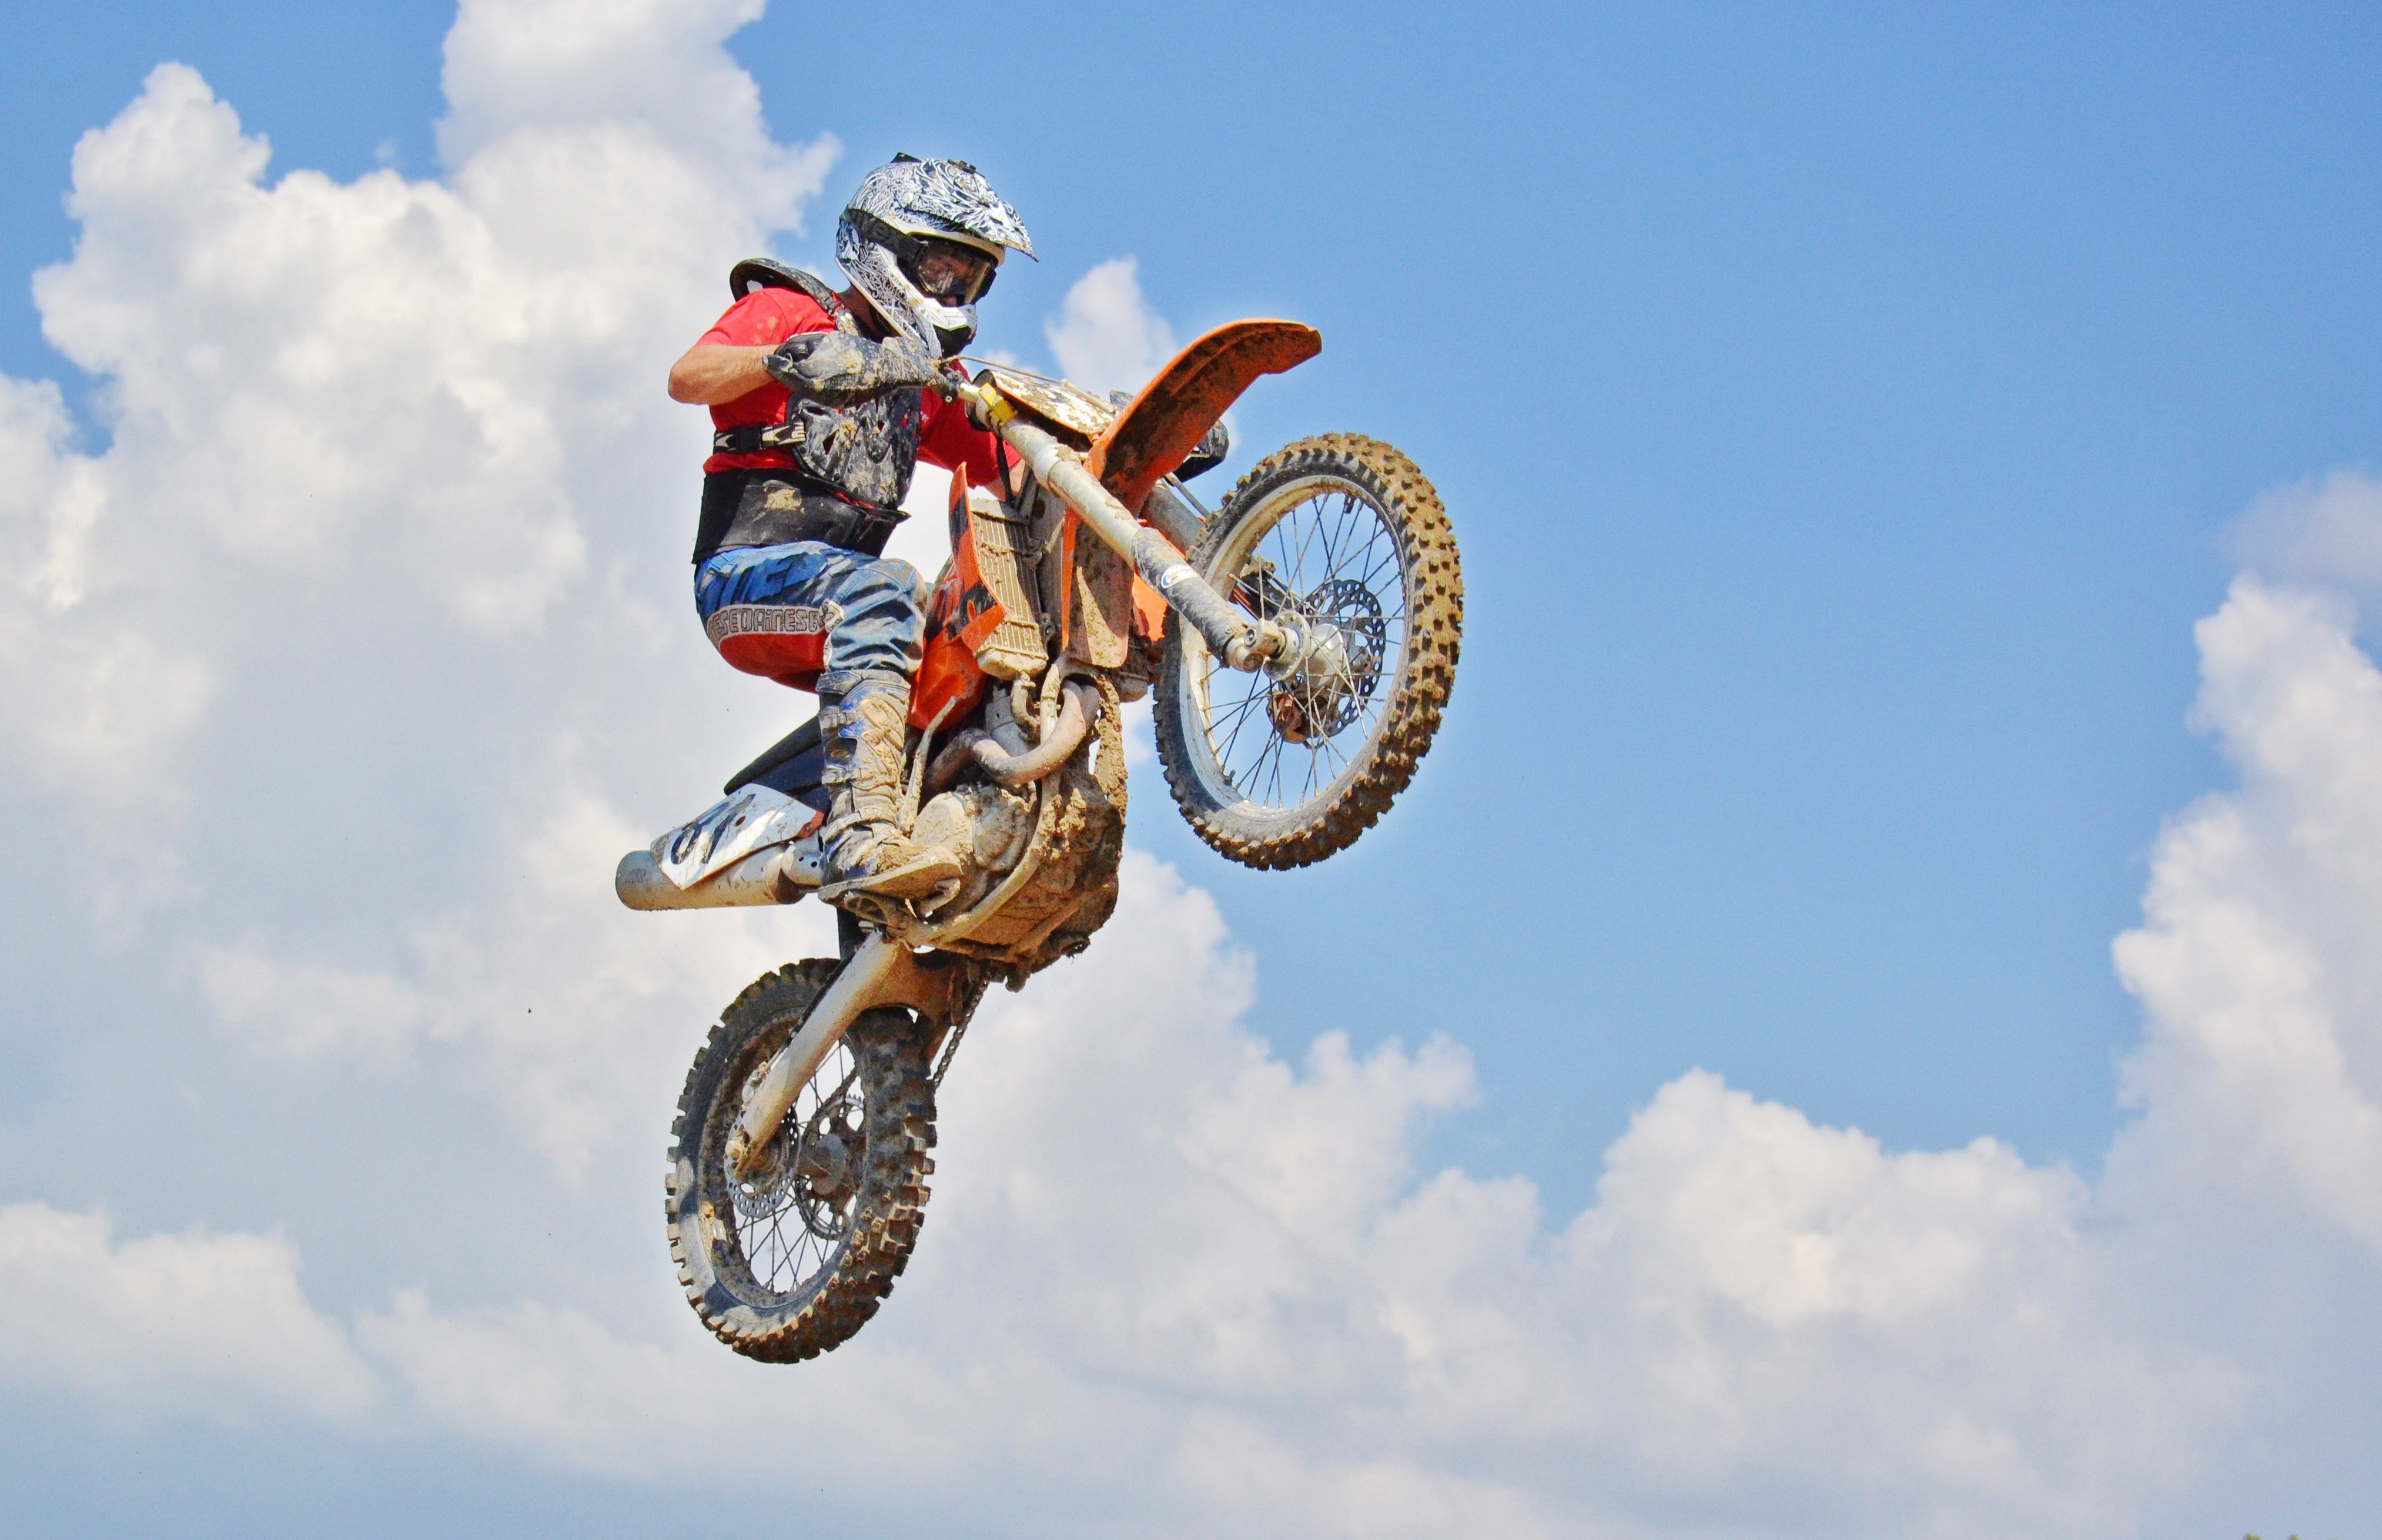 Quiz Talk Dirt Y How Well Do You Know Dirt Bike Lingo And Other Related Fun Facts